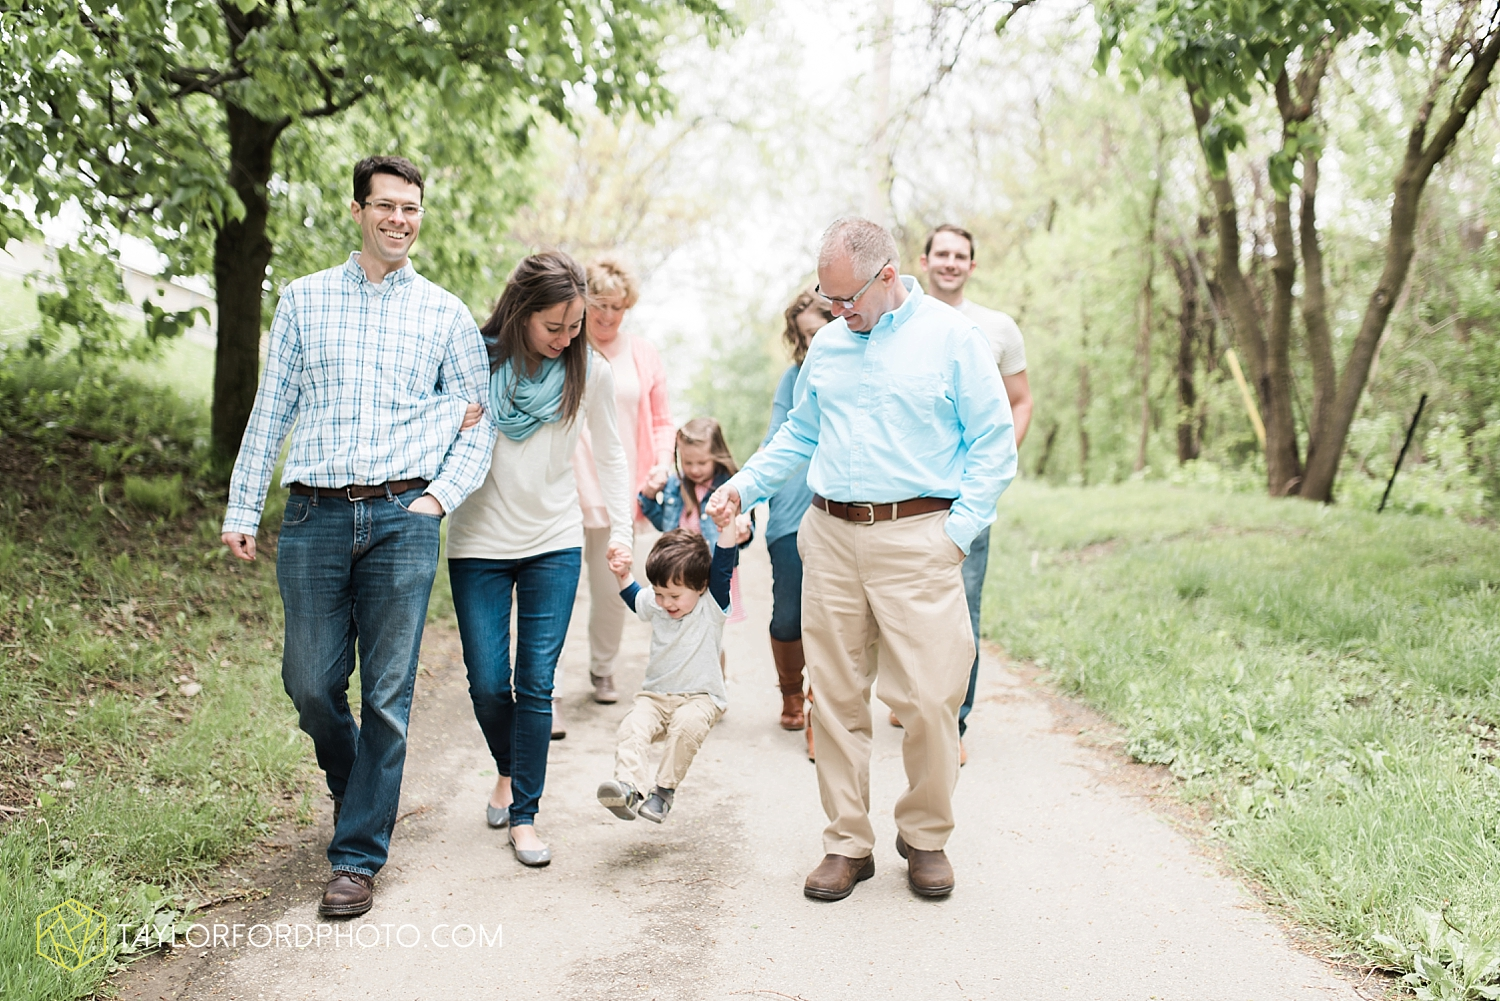 fort_wayne_indiana_family_photography_taylor_ford_0897.jpg